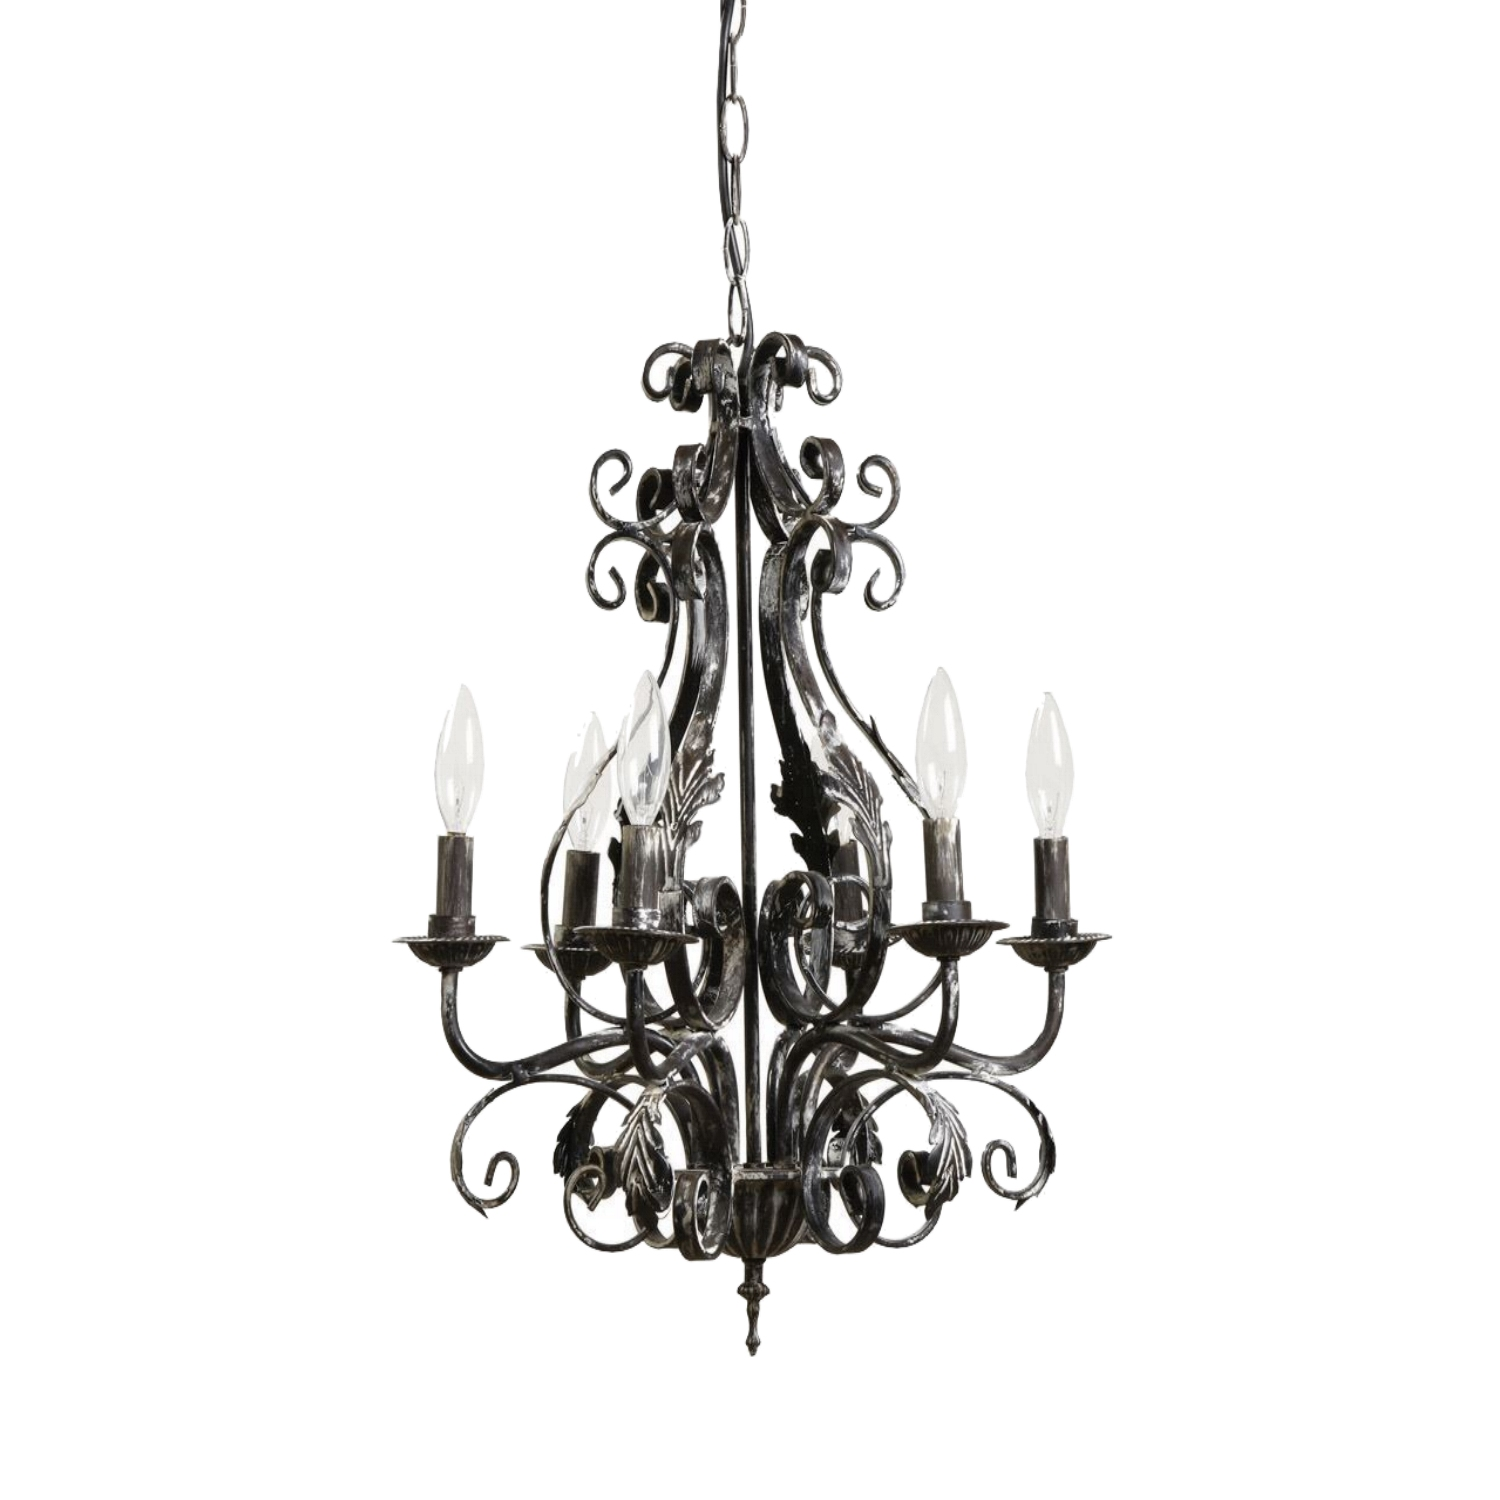 Acanthus leaf french country chandelier w black white aged acanthus leaf french country chandelier w black white aged finish painted aloadofball Image collections